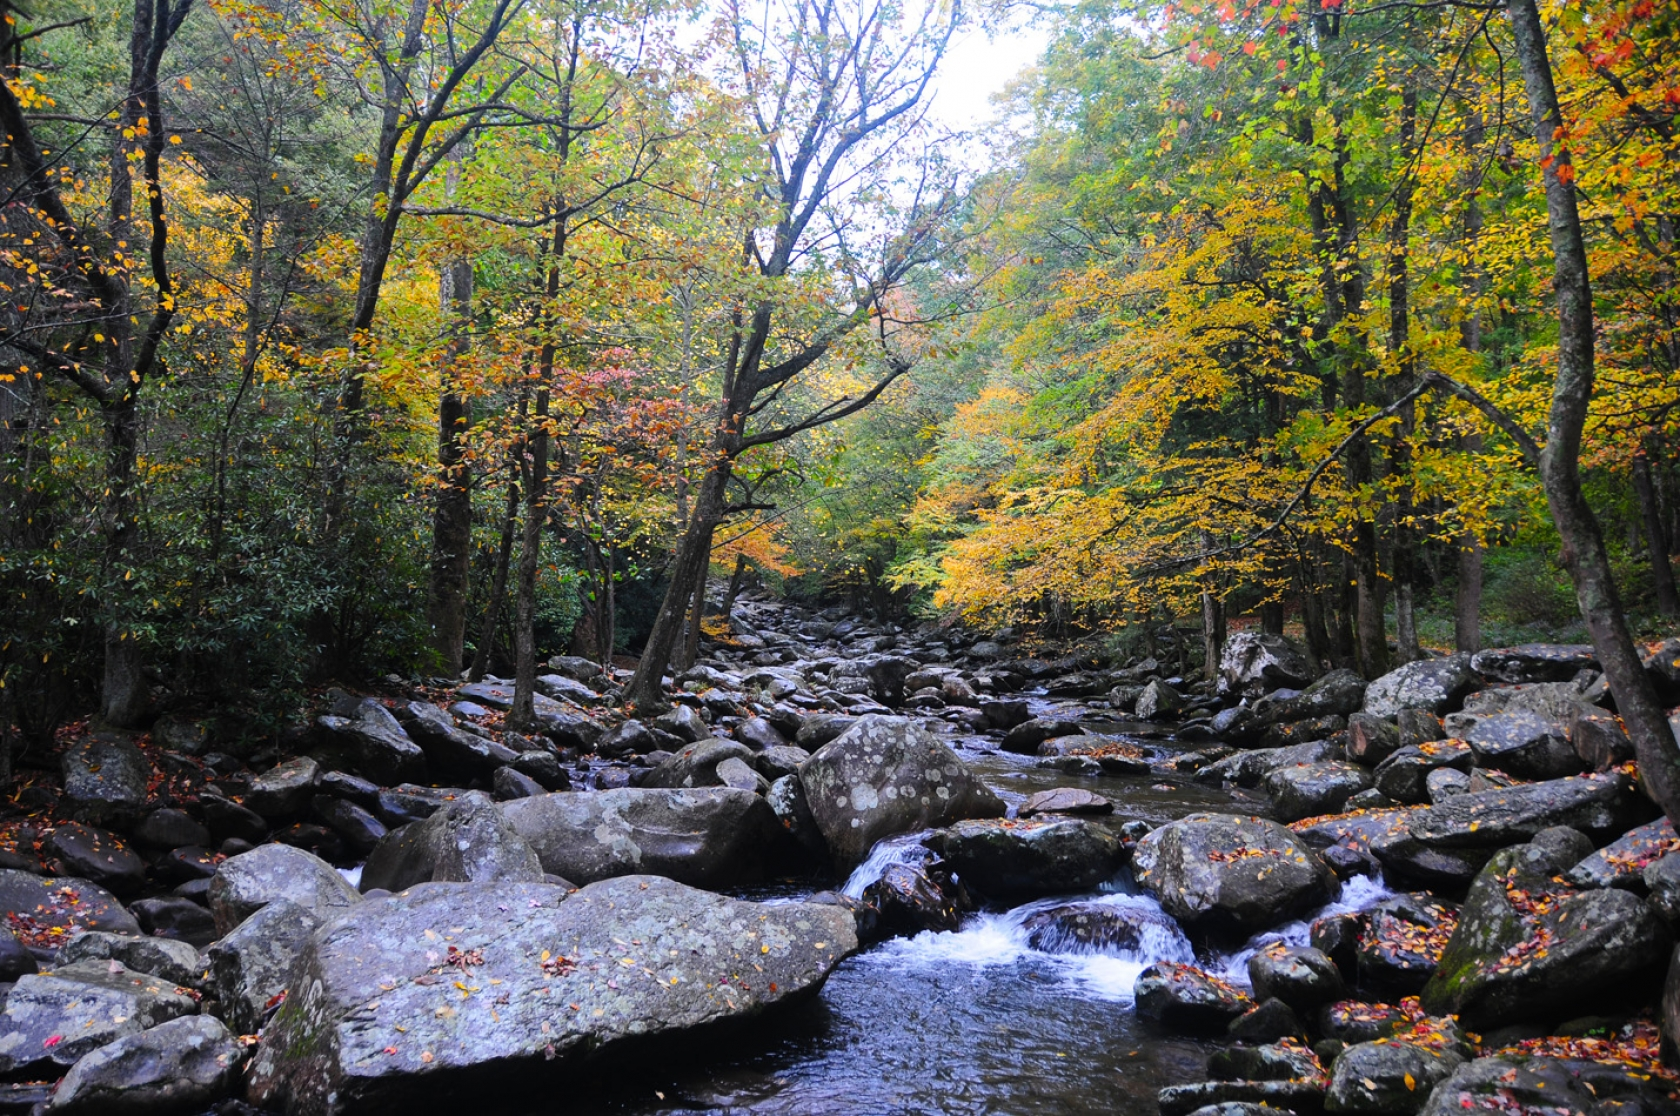 Trees with yellow leaves line a small, boulder-filled river